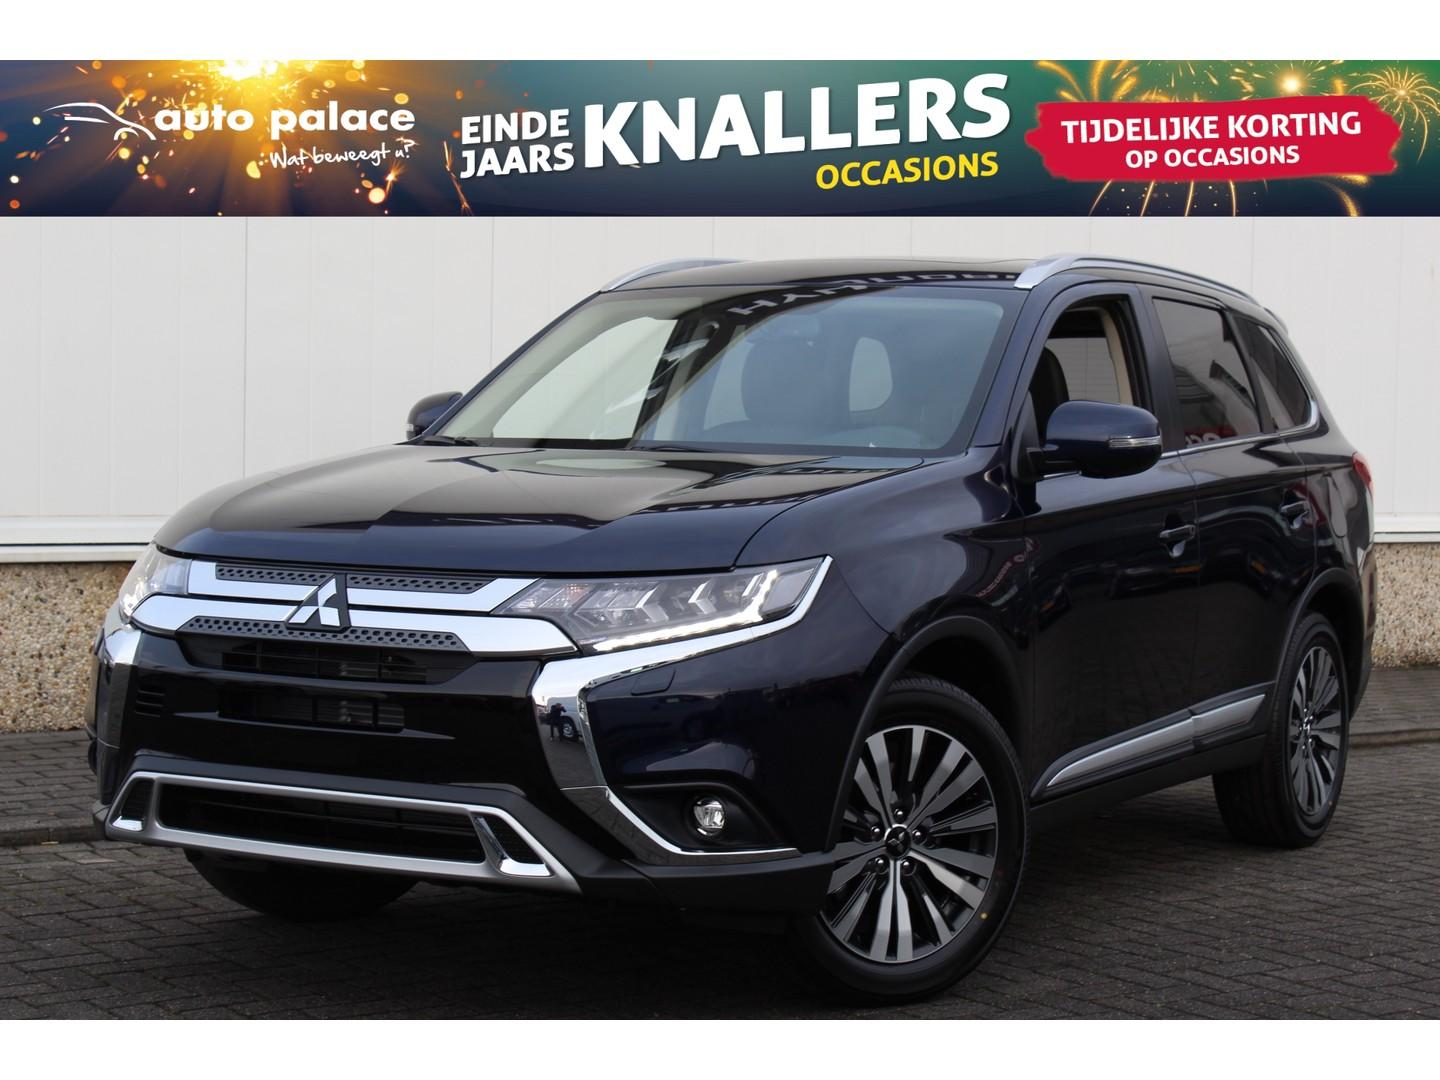 Mitsubishi Outlander 2.0 mivec 150pk 4wd cvt 7persoons instyle+